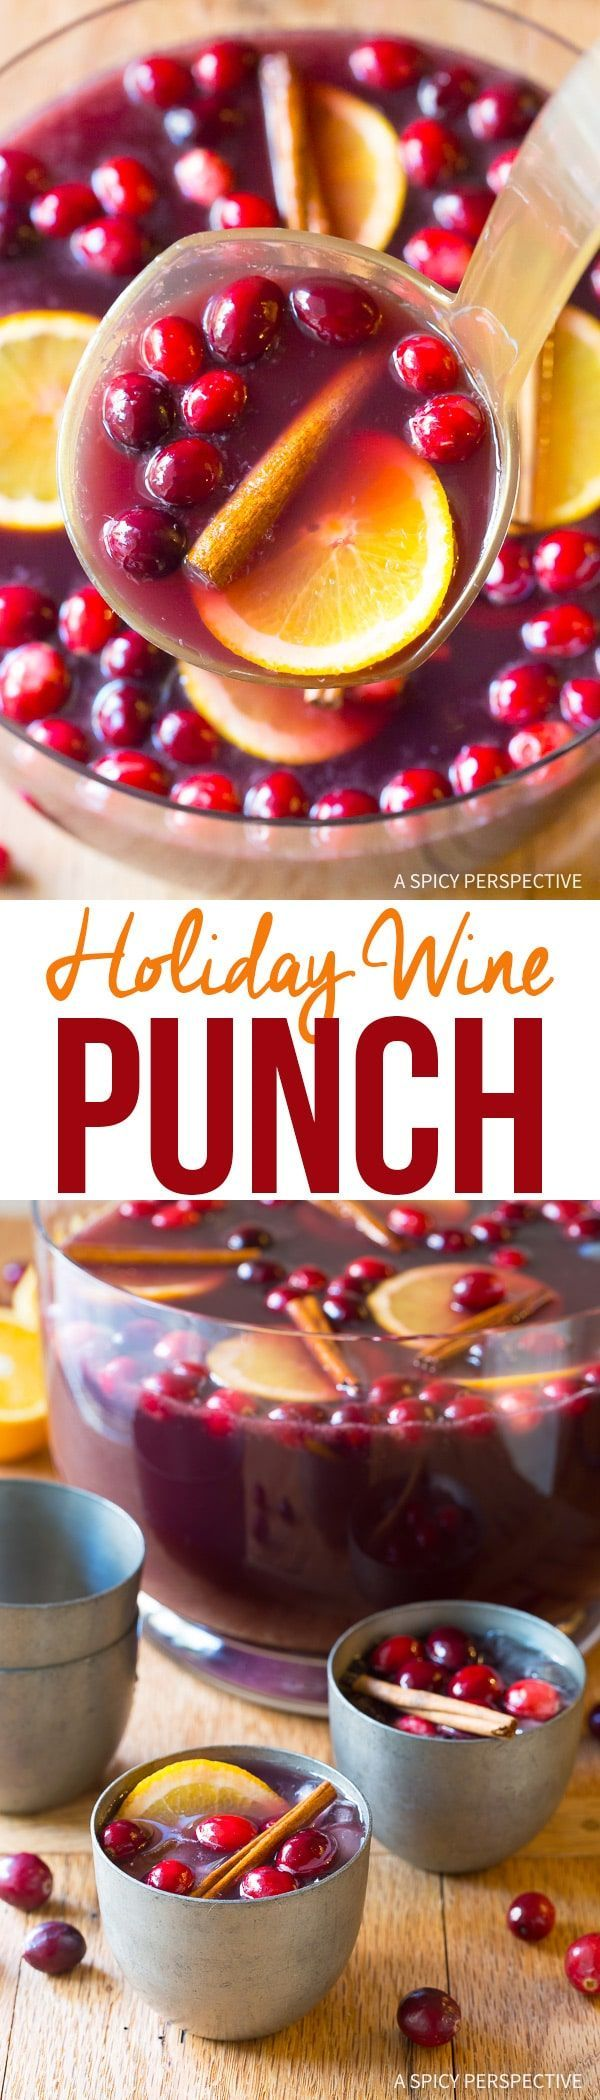 Holiday Wine Punch Cocktails Recipe - This easy 5-ingredient boozy holiday punch makes a huge batch of Christmas or New Year cocktails all your guests will love! via @spicyperspectiv